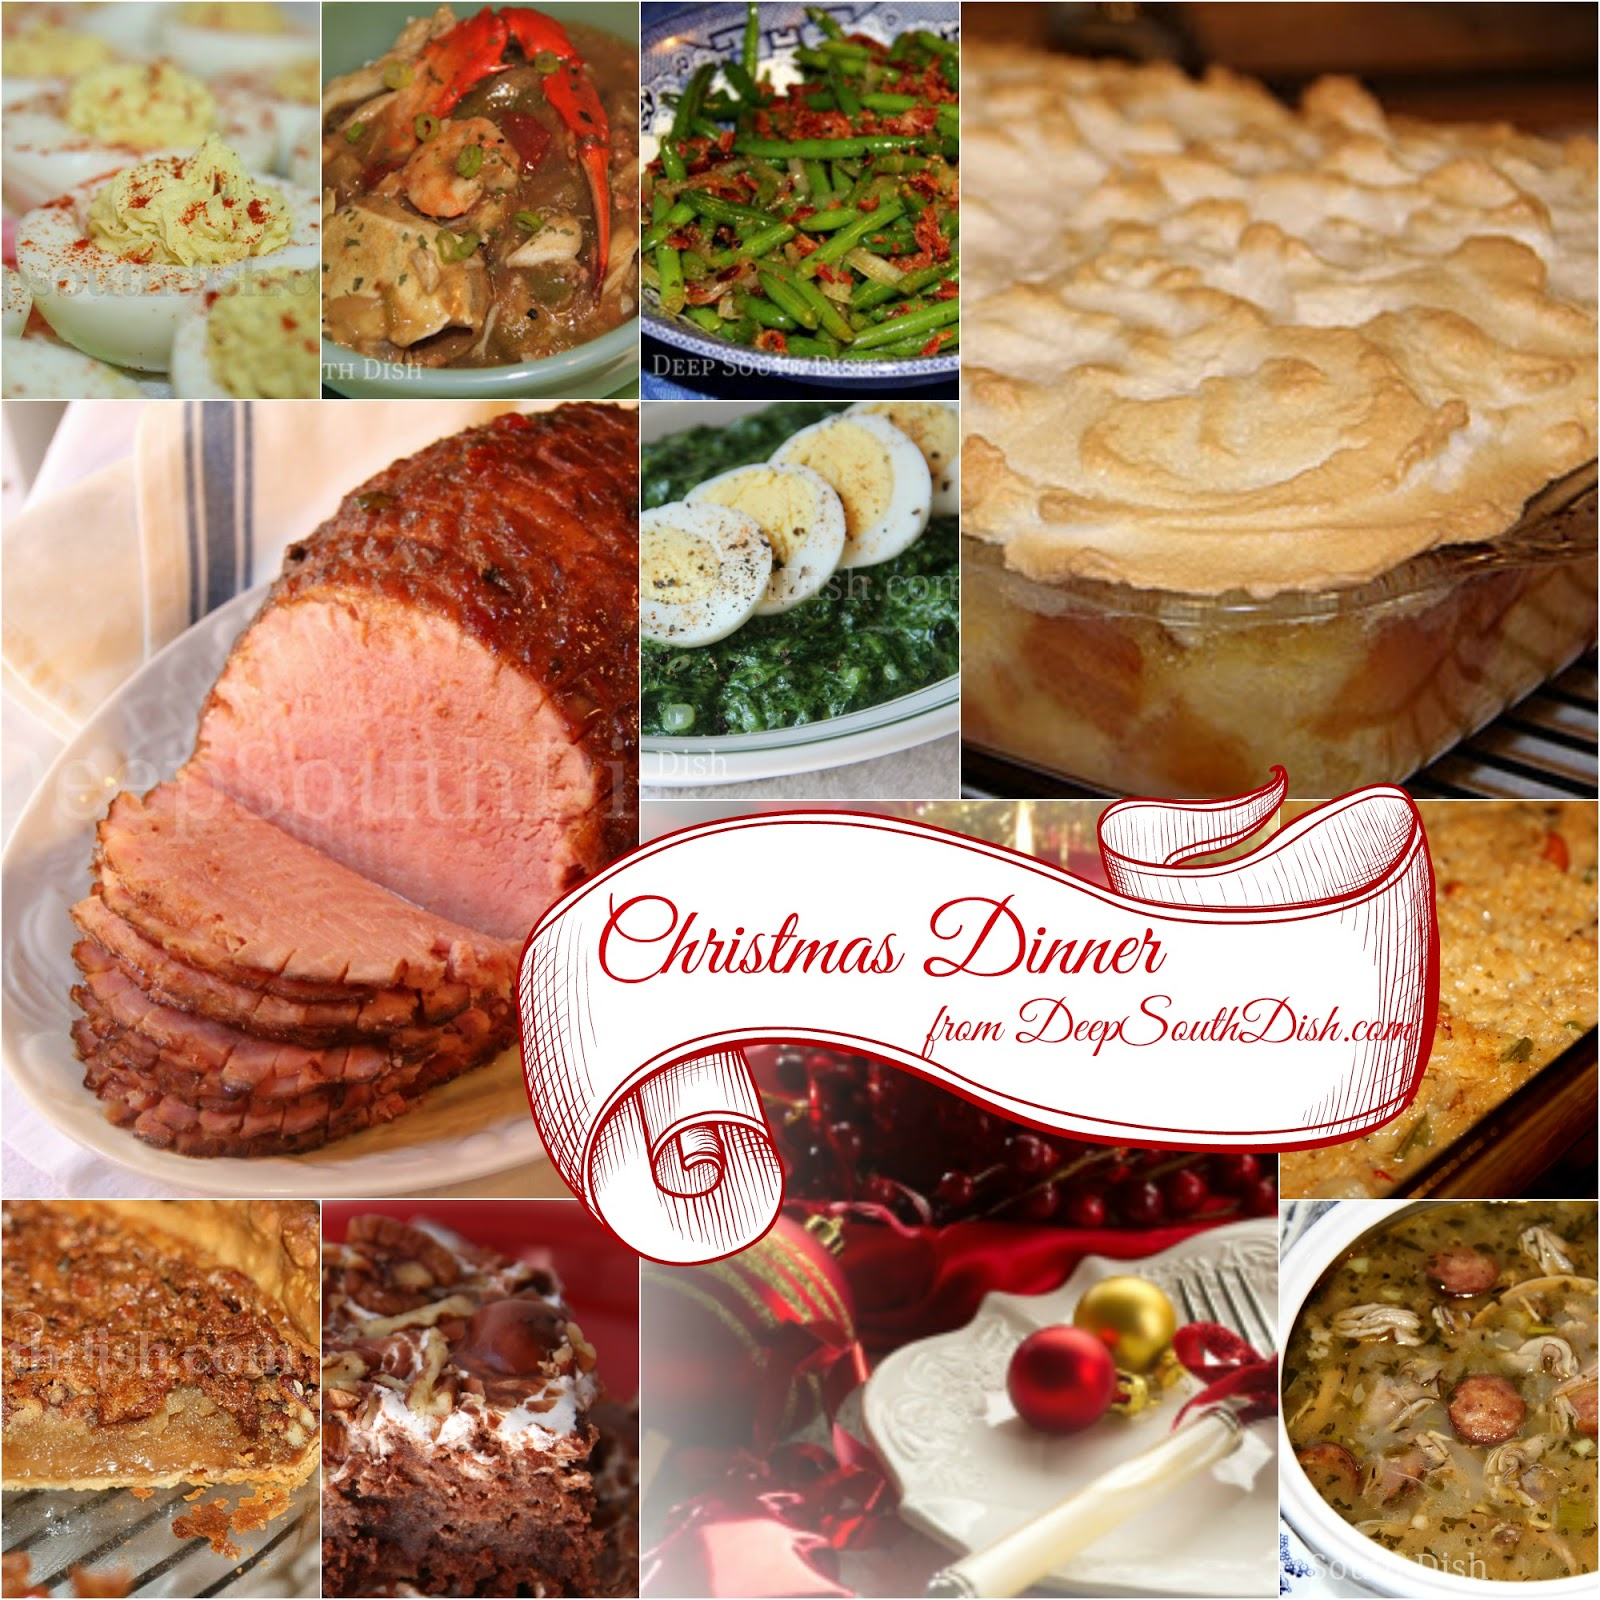 Deep south dish southern christmas dinner menu and recipe ideas southern christmas dinner menu and recipe ideas forumfinder Image collections